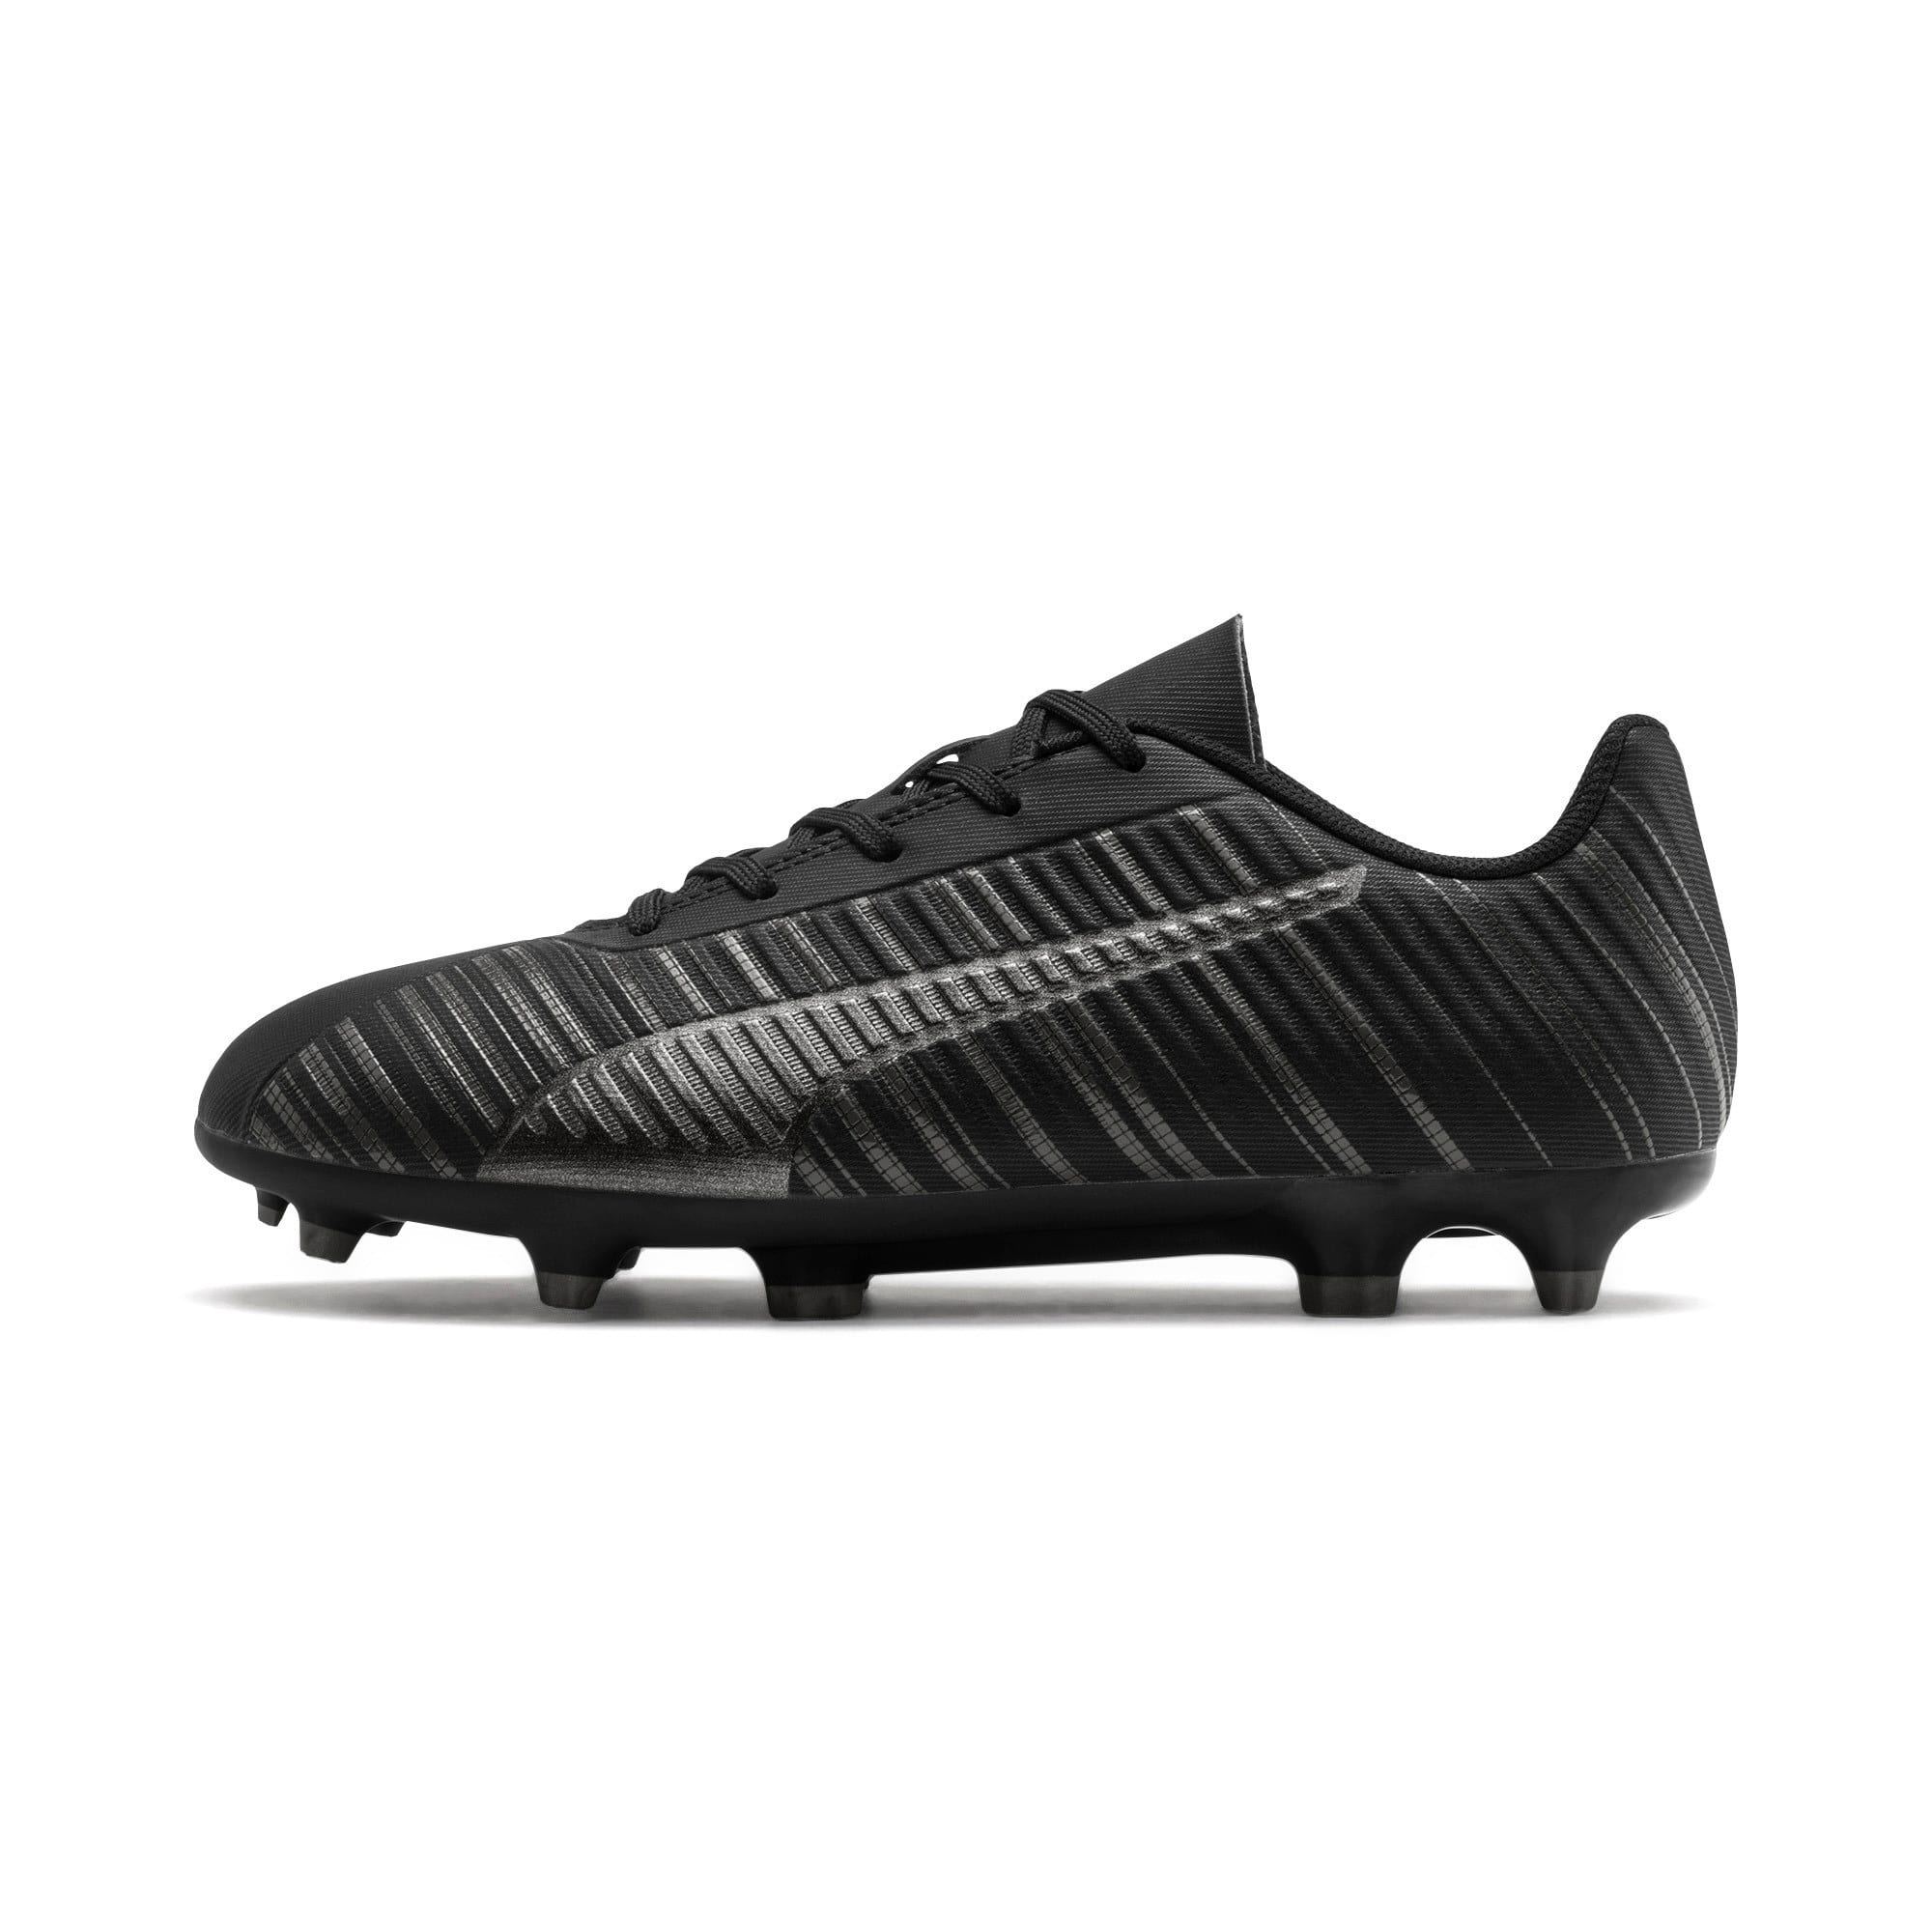 Thumbnail 1 of PUMA ONE 5.4 FG/AG Youth Fußballschuhe, Black-Black-Puma Aged Silver, medium